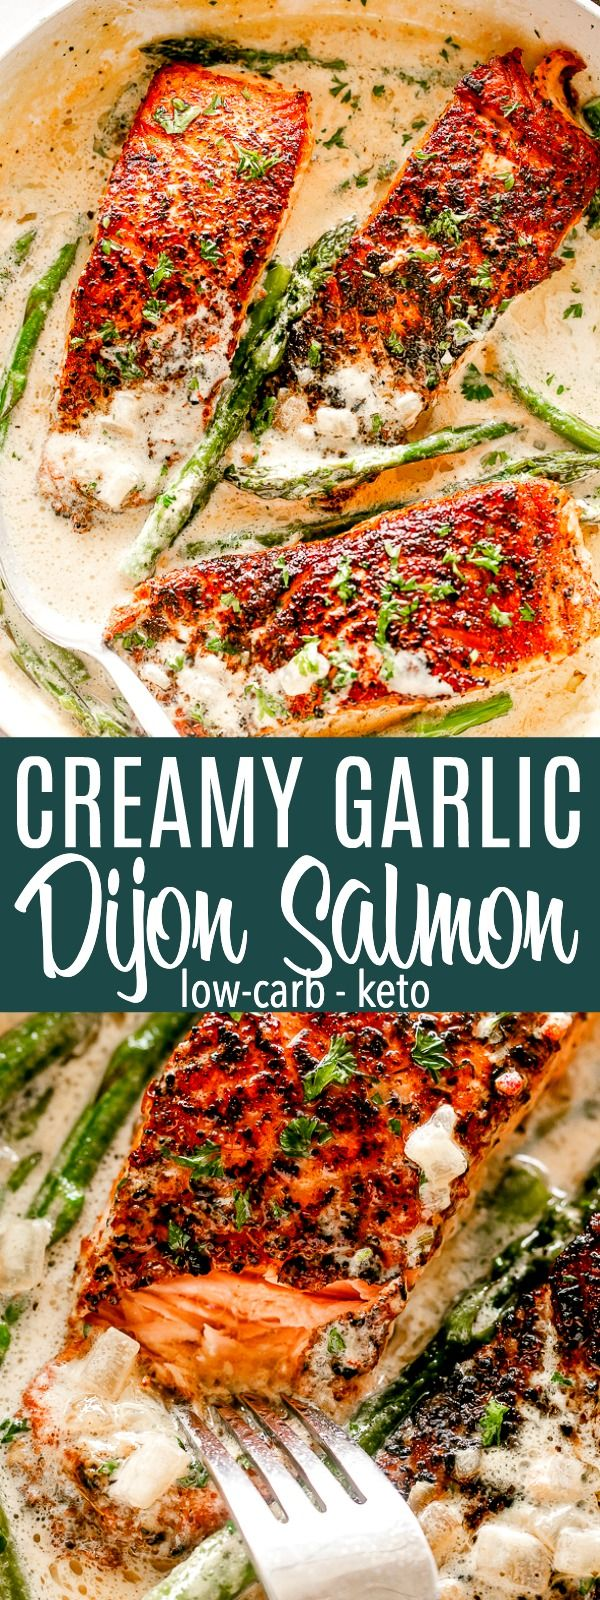 Creamy Garlic Dijon Salmon - Juicy, flaky, and flavorful salmon fillets pan seared in a delicious cream sauce with dijon mustard and garlic. Crispy on the outside and tender on the inside, everyone absolutely loves this salmon recipe. The creamy sauce is unbelievably good! #salmonrecipes #creamsauce #lowcarb #keto #salmonrecipes